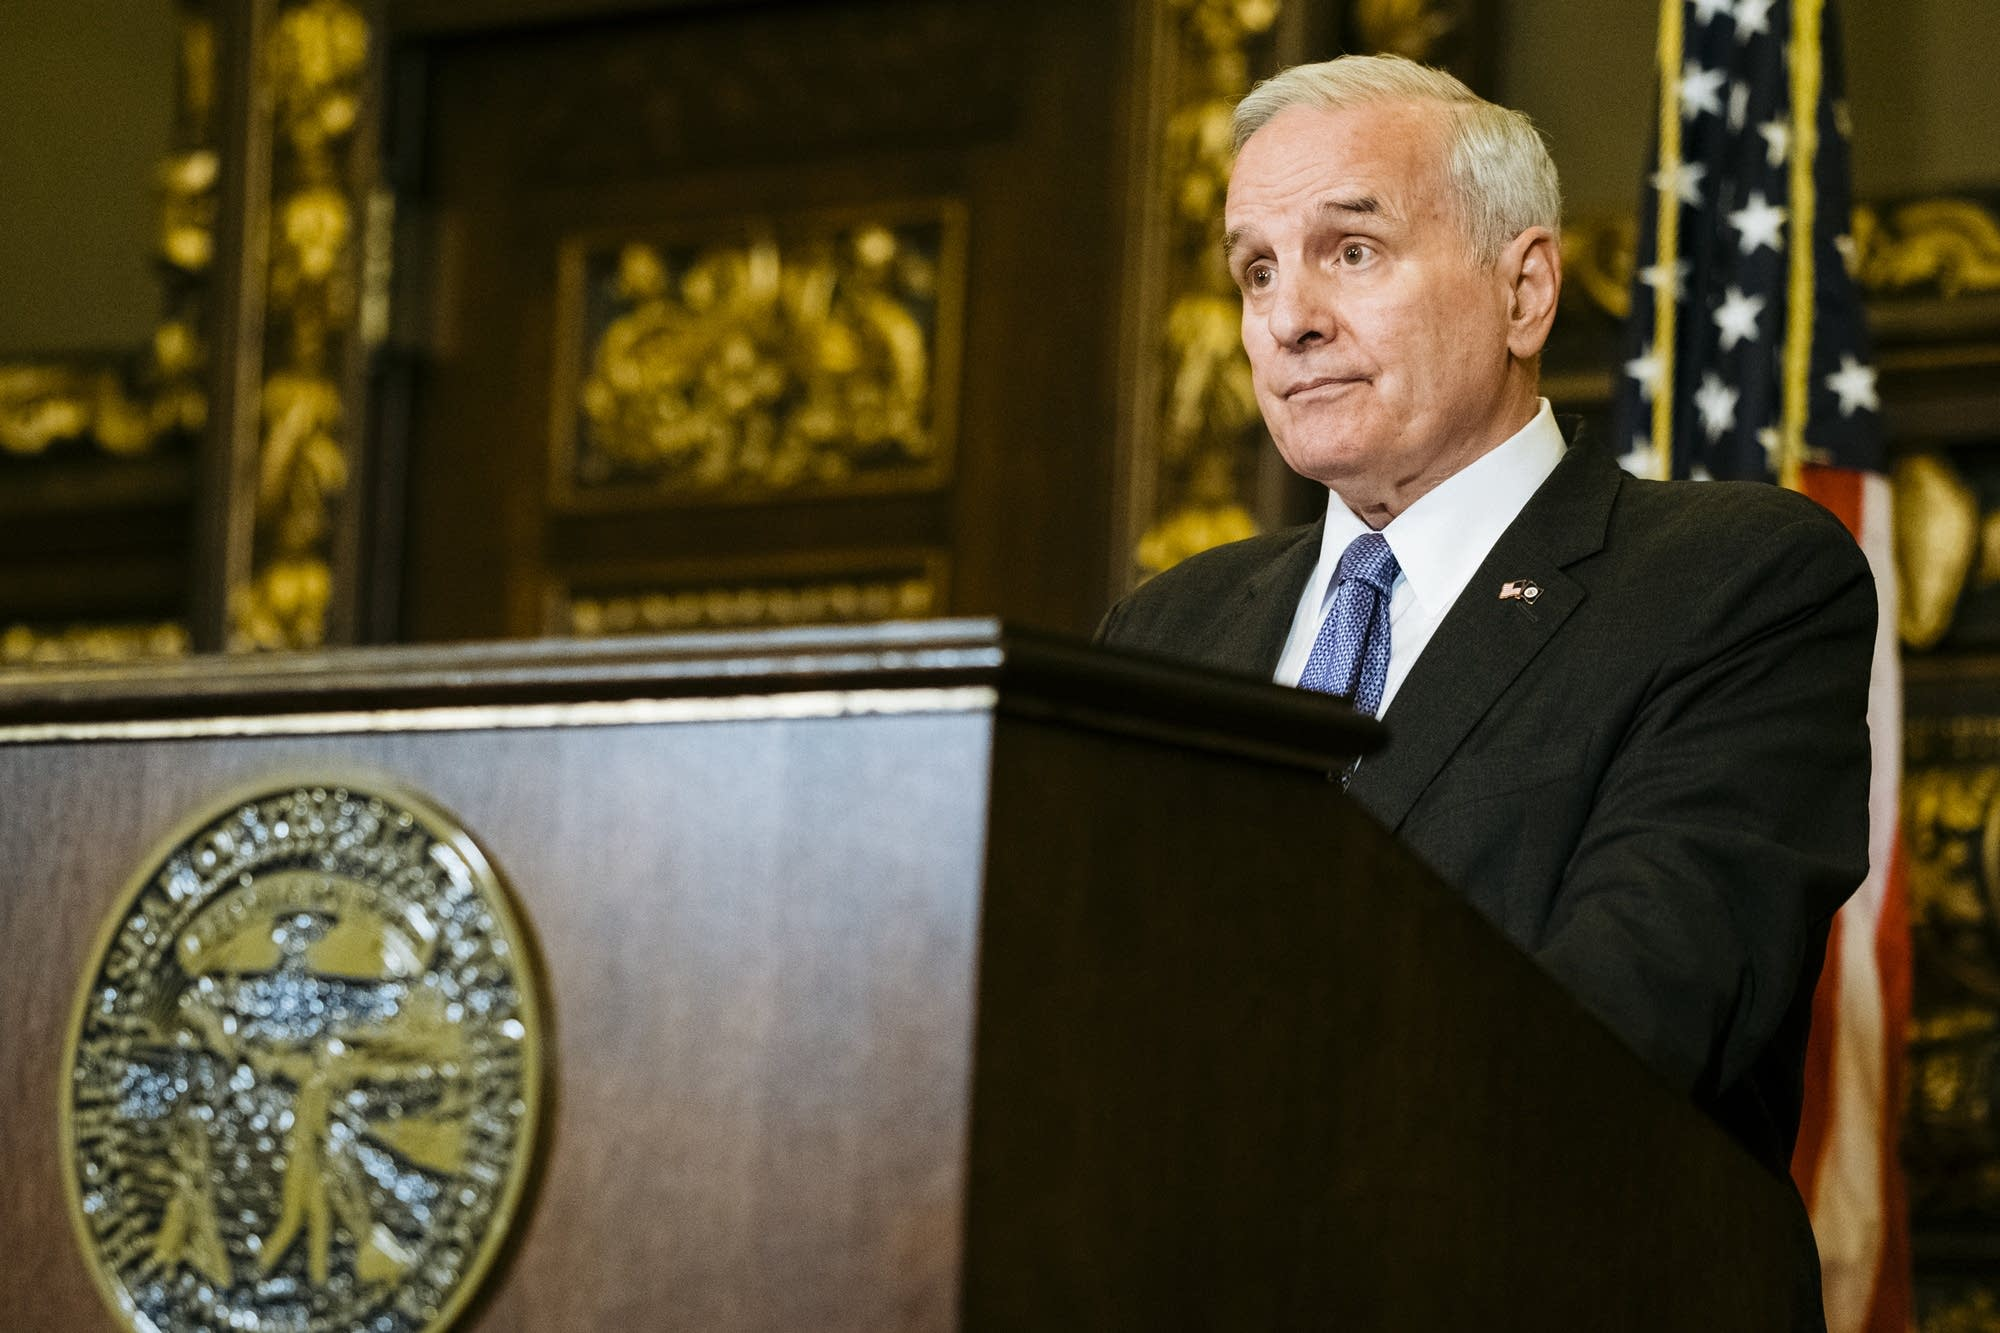 Gov. Mark Dayton speaks at a press conference.